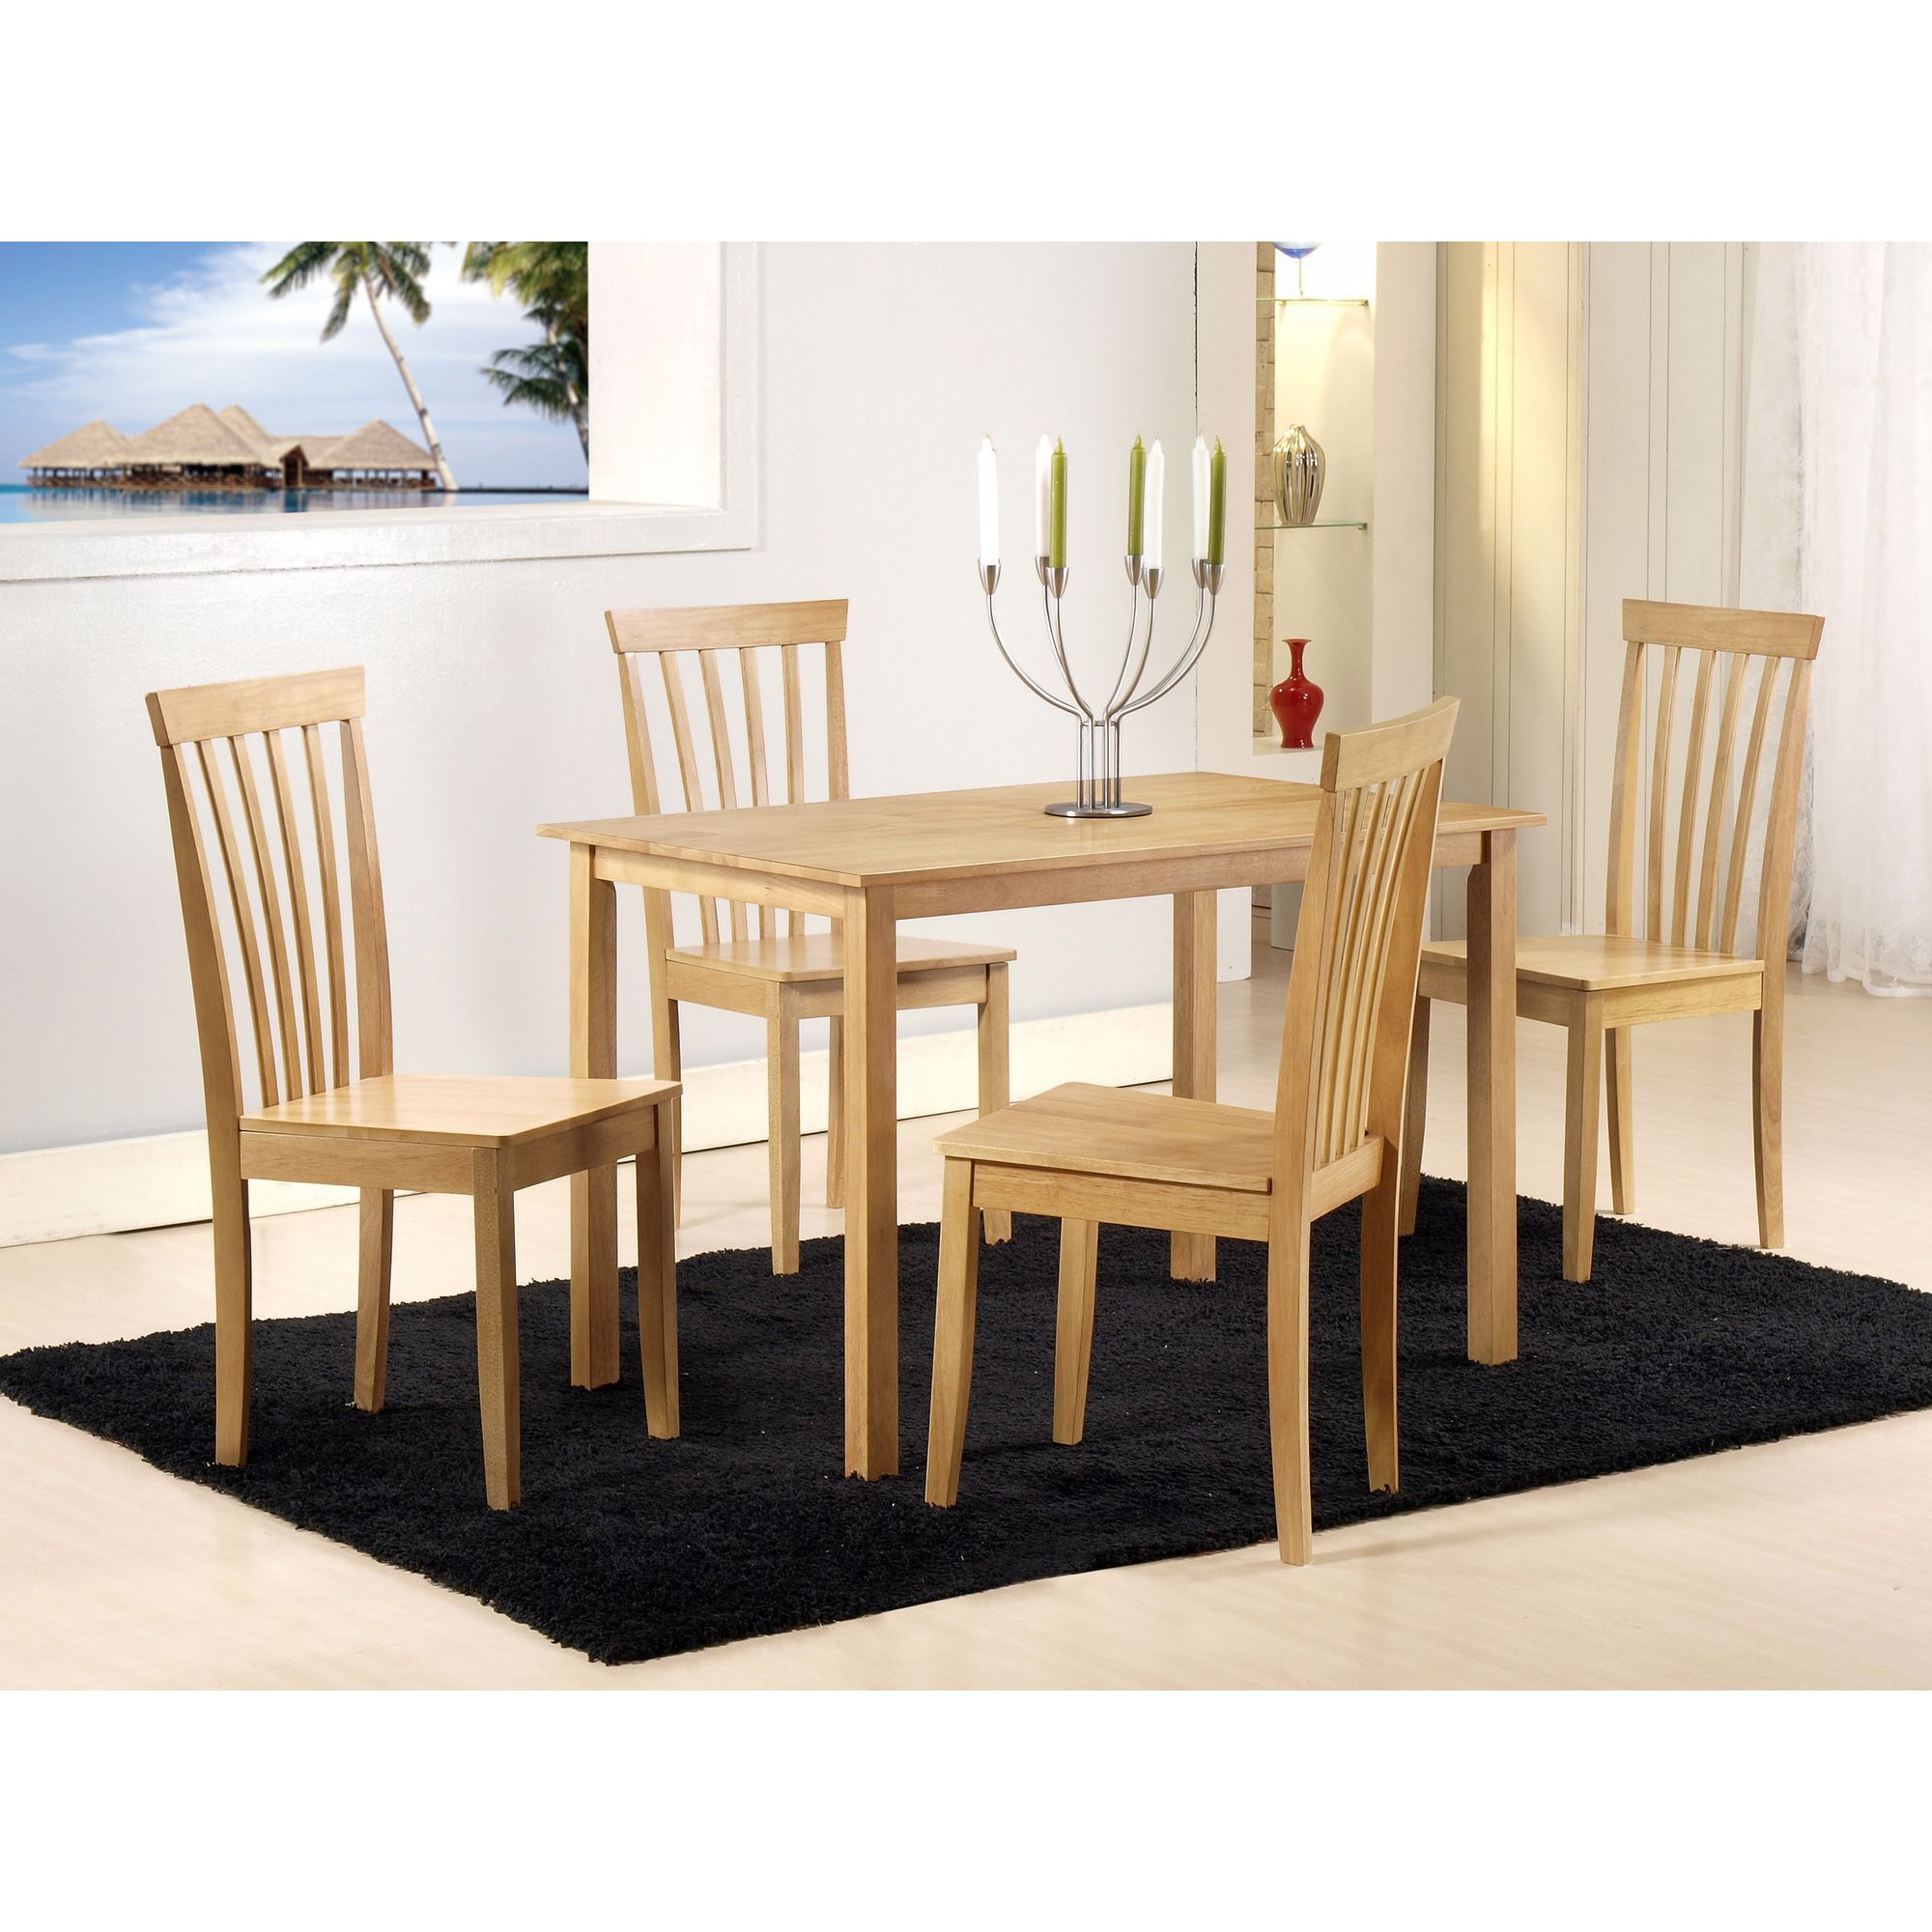 G&P Furniture Torino 5 Piece Dining Set at Tesco Direct